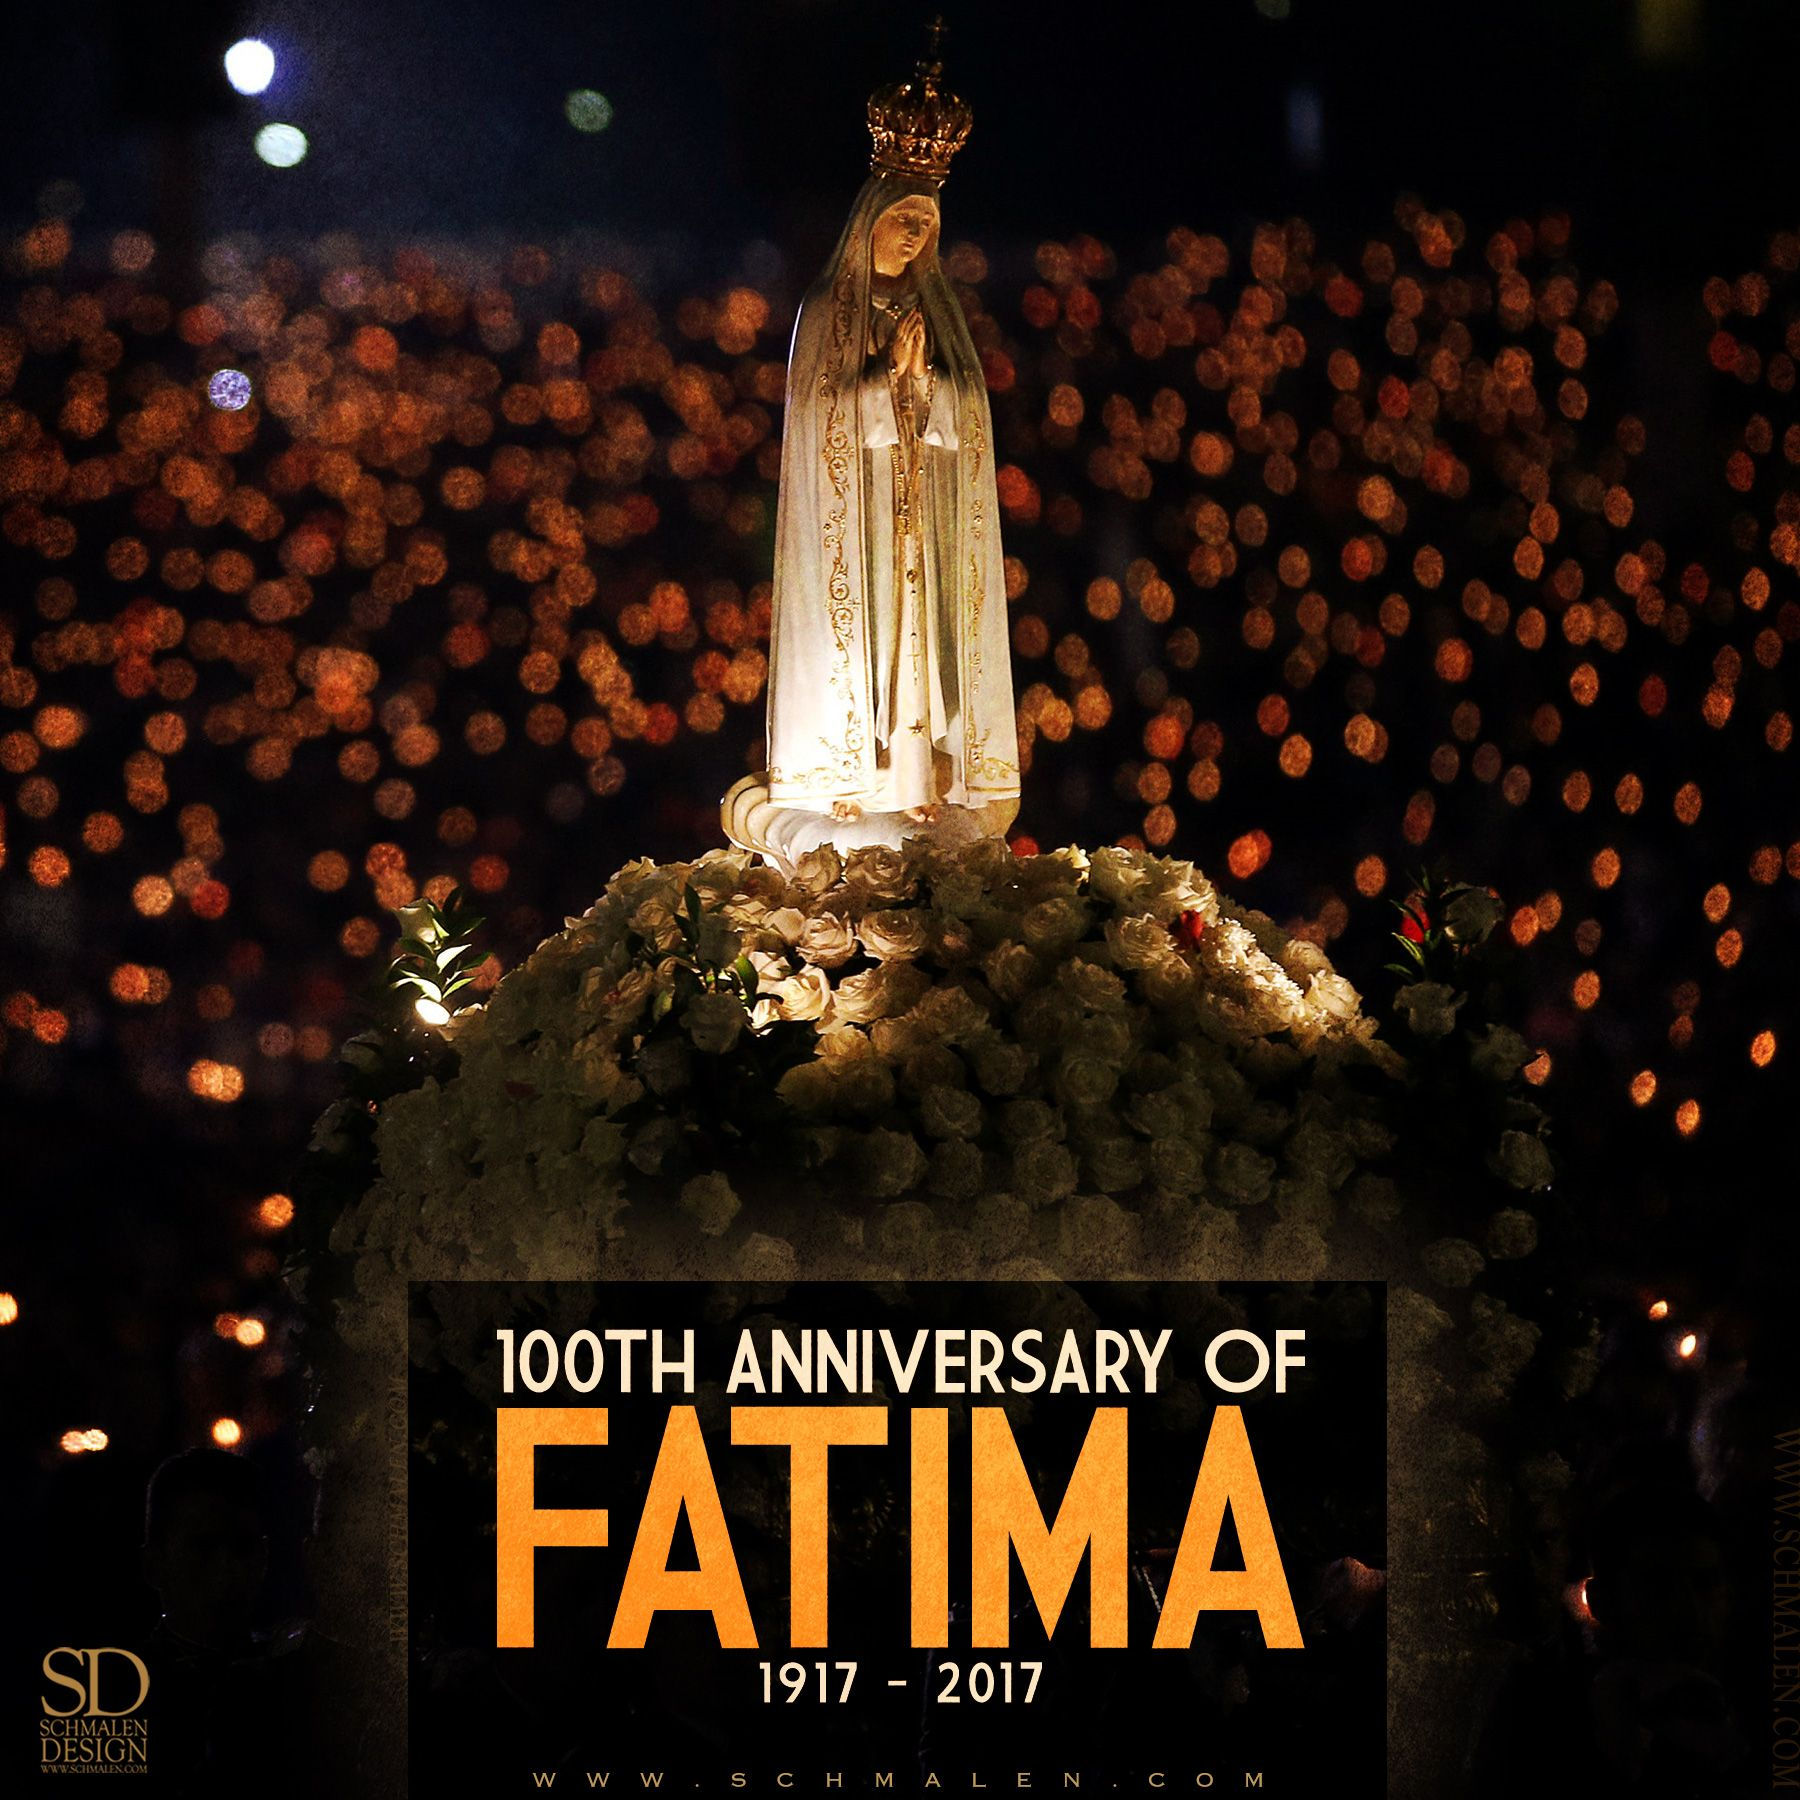 Www Schmalen Com The 100th Anniversary Of Fatima Blessed Mother Mary Lady Of Fatima Blessed Mary